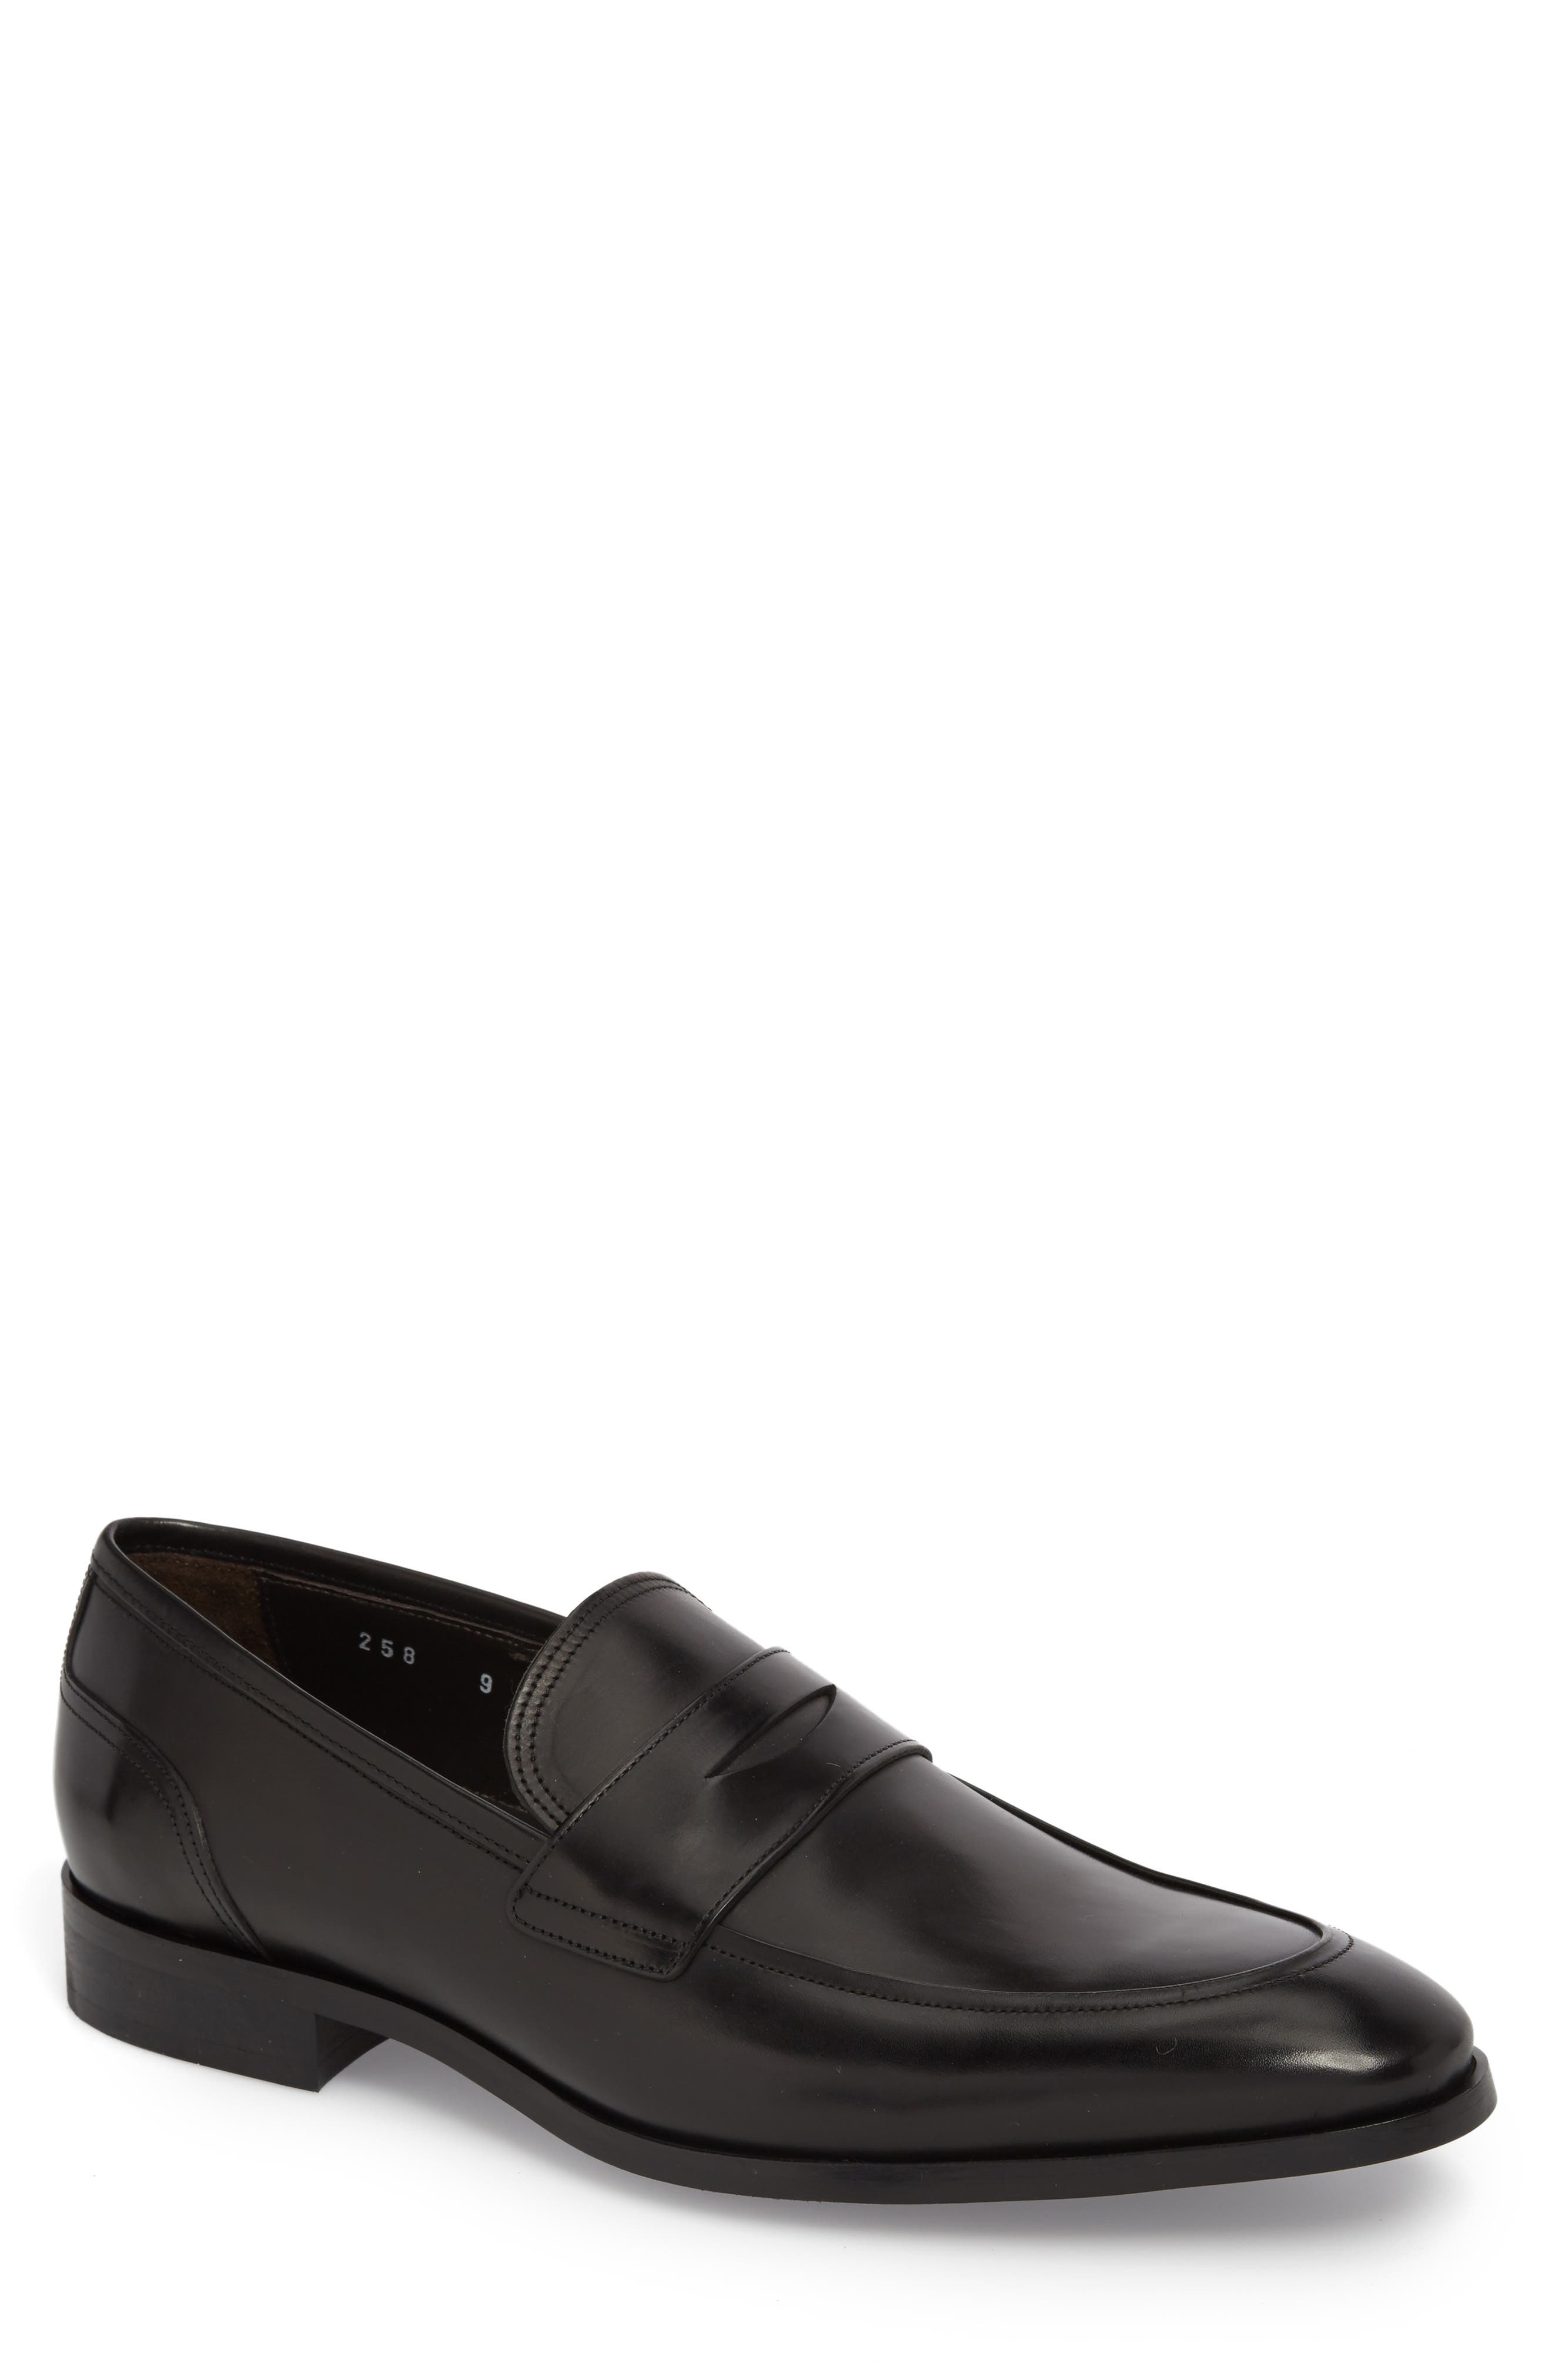 Deane Penny Loafer,                         Main,                         color, BLACK LEATHER